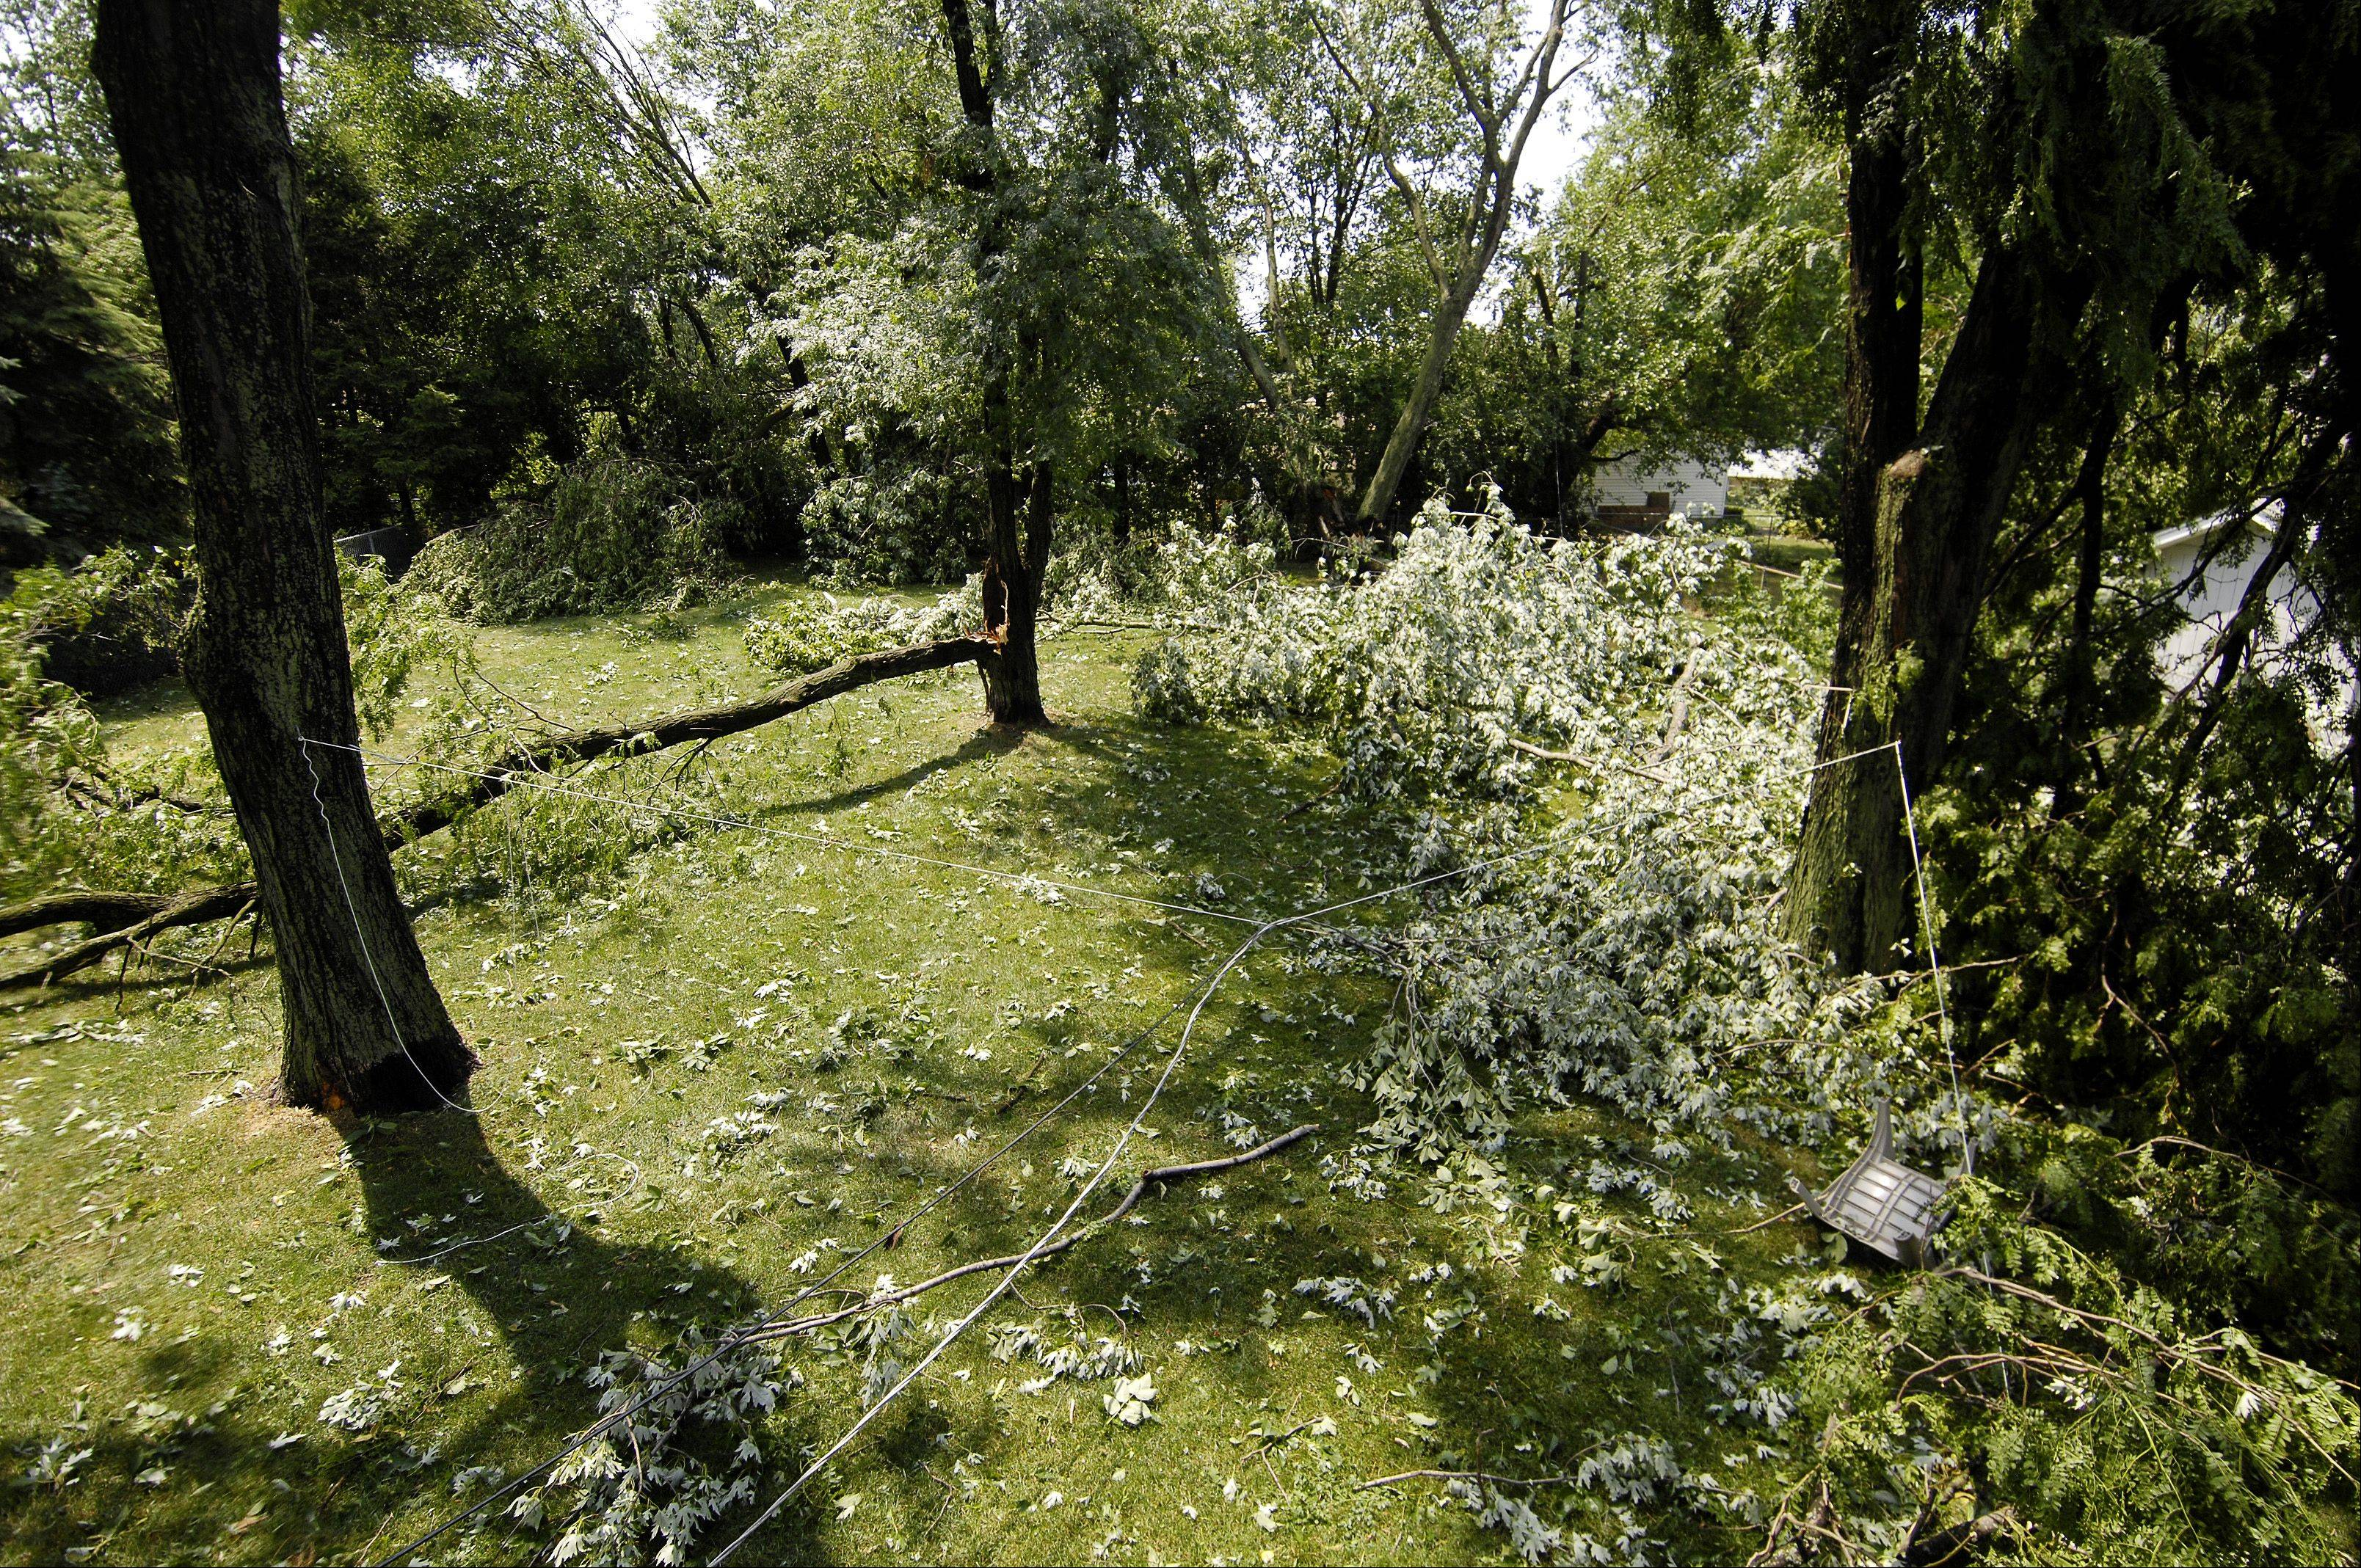 The backyard of the Roloff family in unincorporated DuPage County near Wheaton suffered severe storm damage Sunday afternoon.